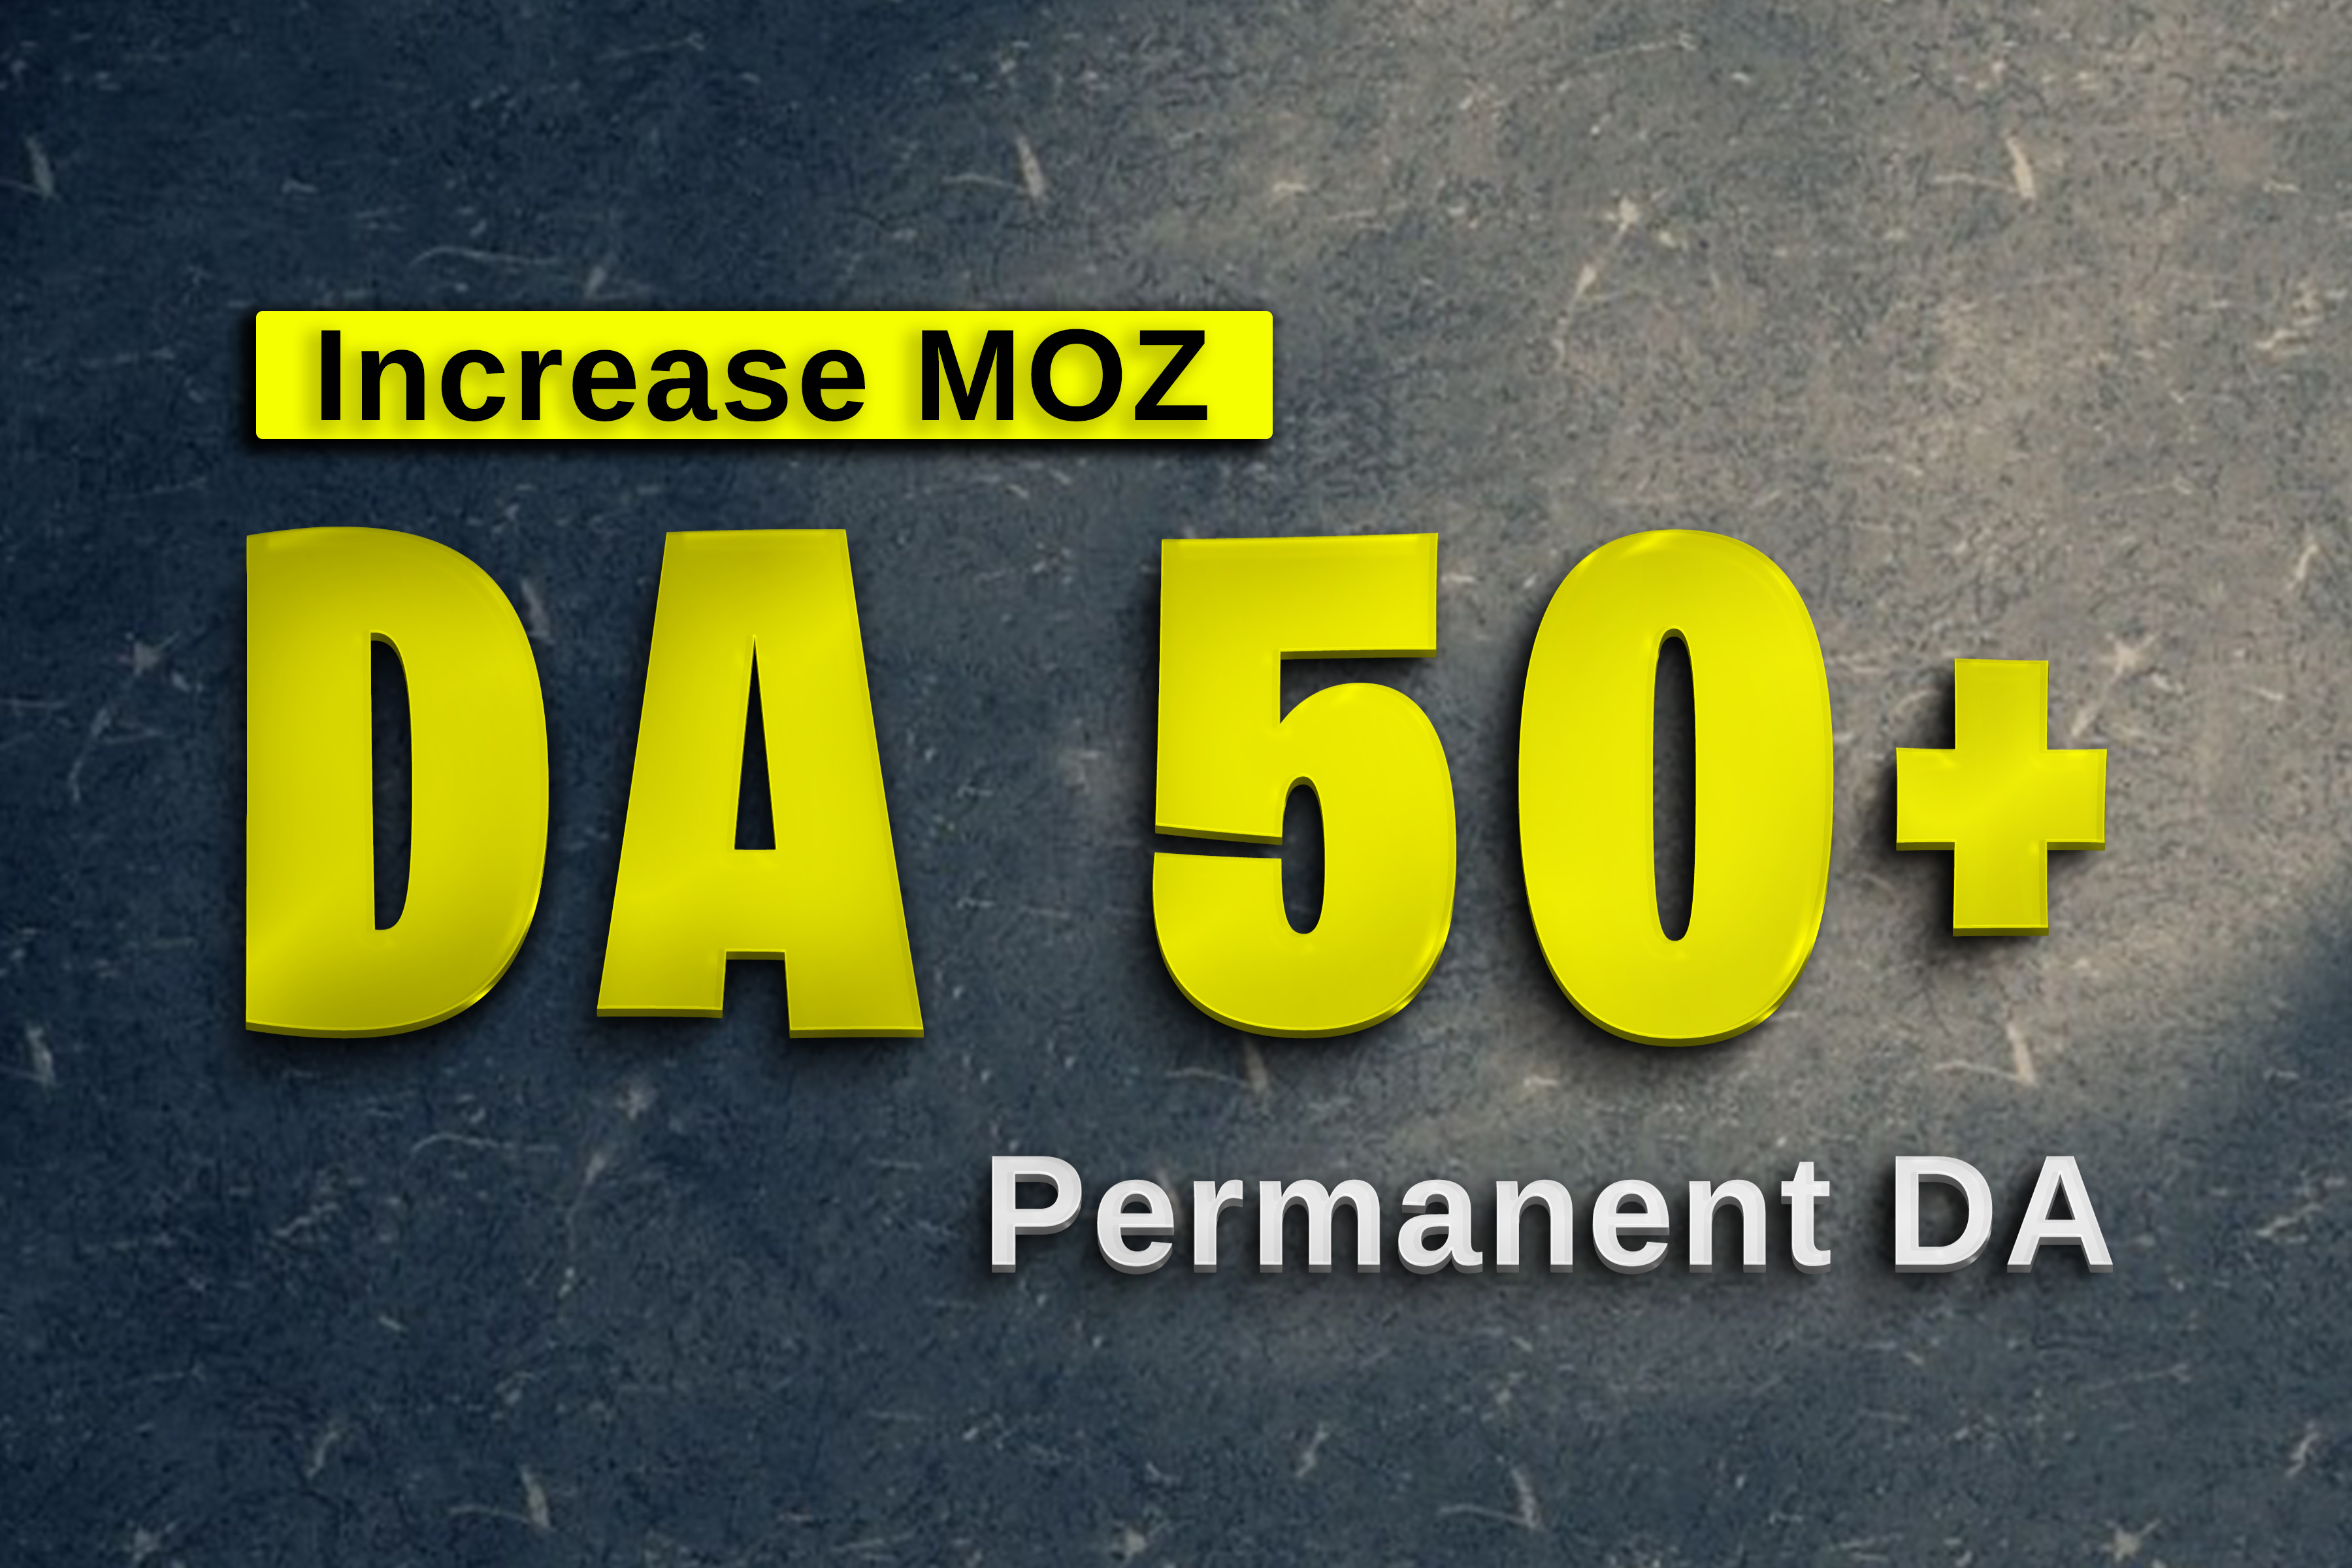 Limited Offer Increase Permanent MOZ DA0 to DA50+ of your website MOZ Domain Authority